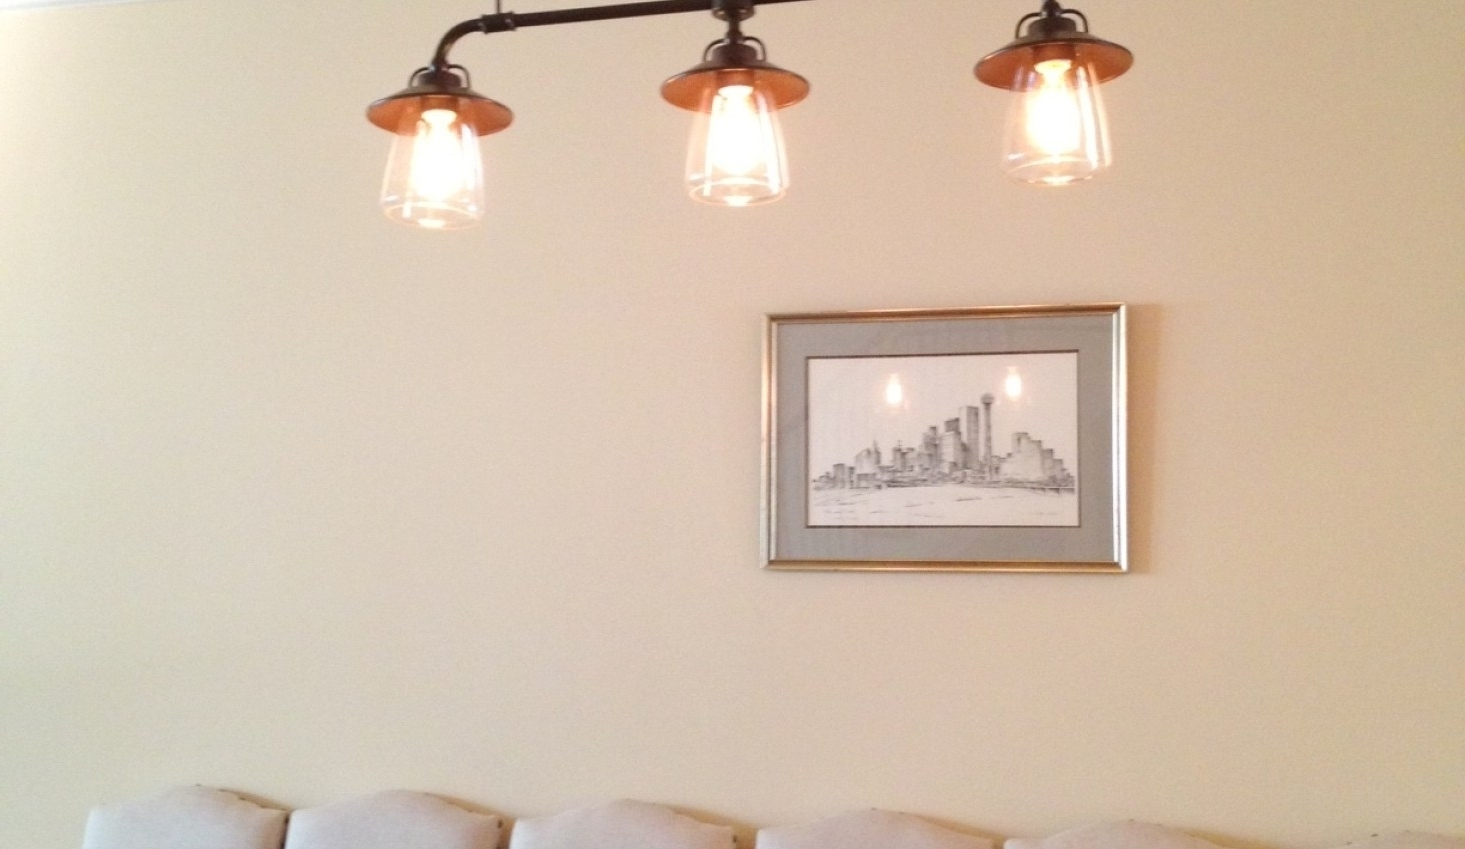 Most Up To Date Wall Mounted Chandelier Lighting Pertaining To Light : Awesome Wall Mounted Bathroom Chandeliers White Flushmount (View 2 of 15)